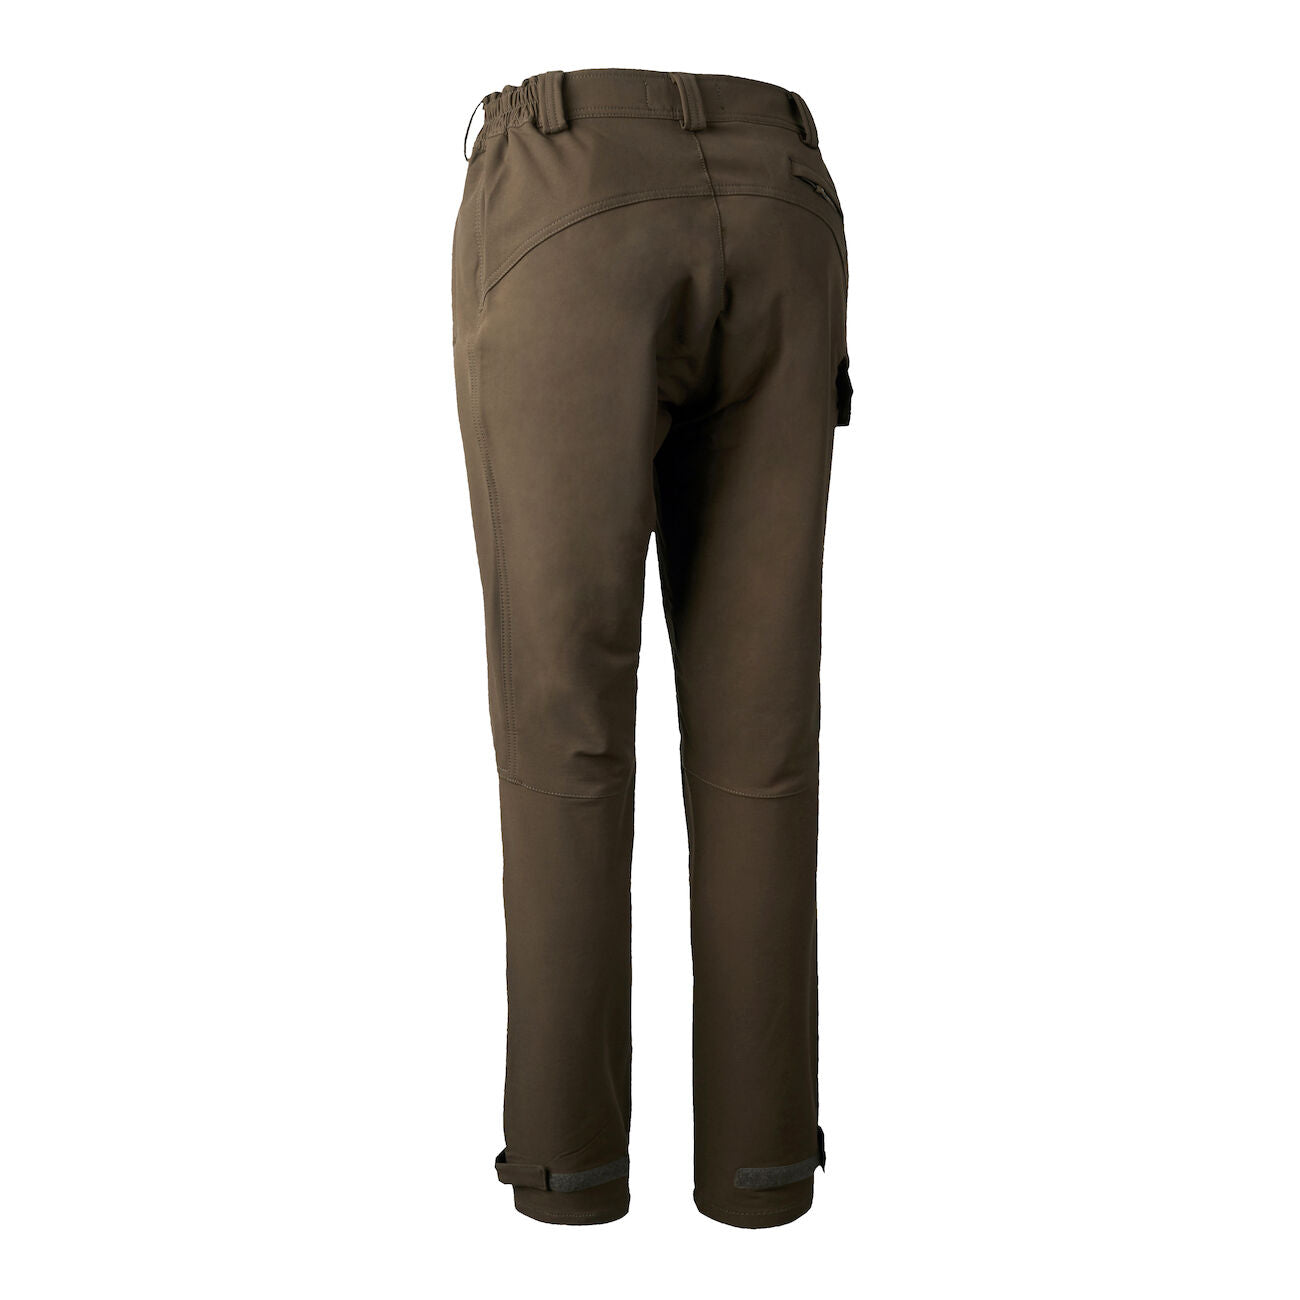 Deerhunter Lady Ann Full Stretch Trouser - Fallen Leaf